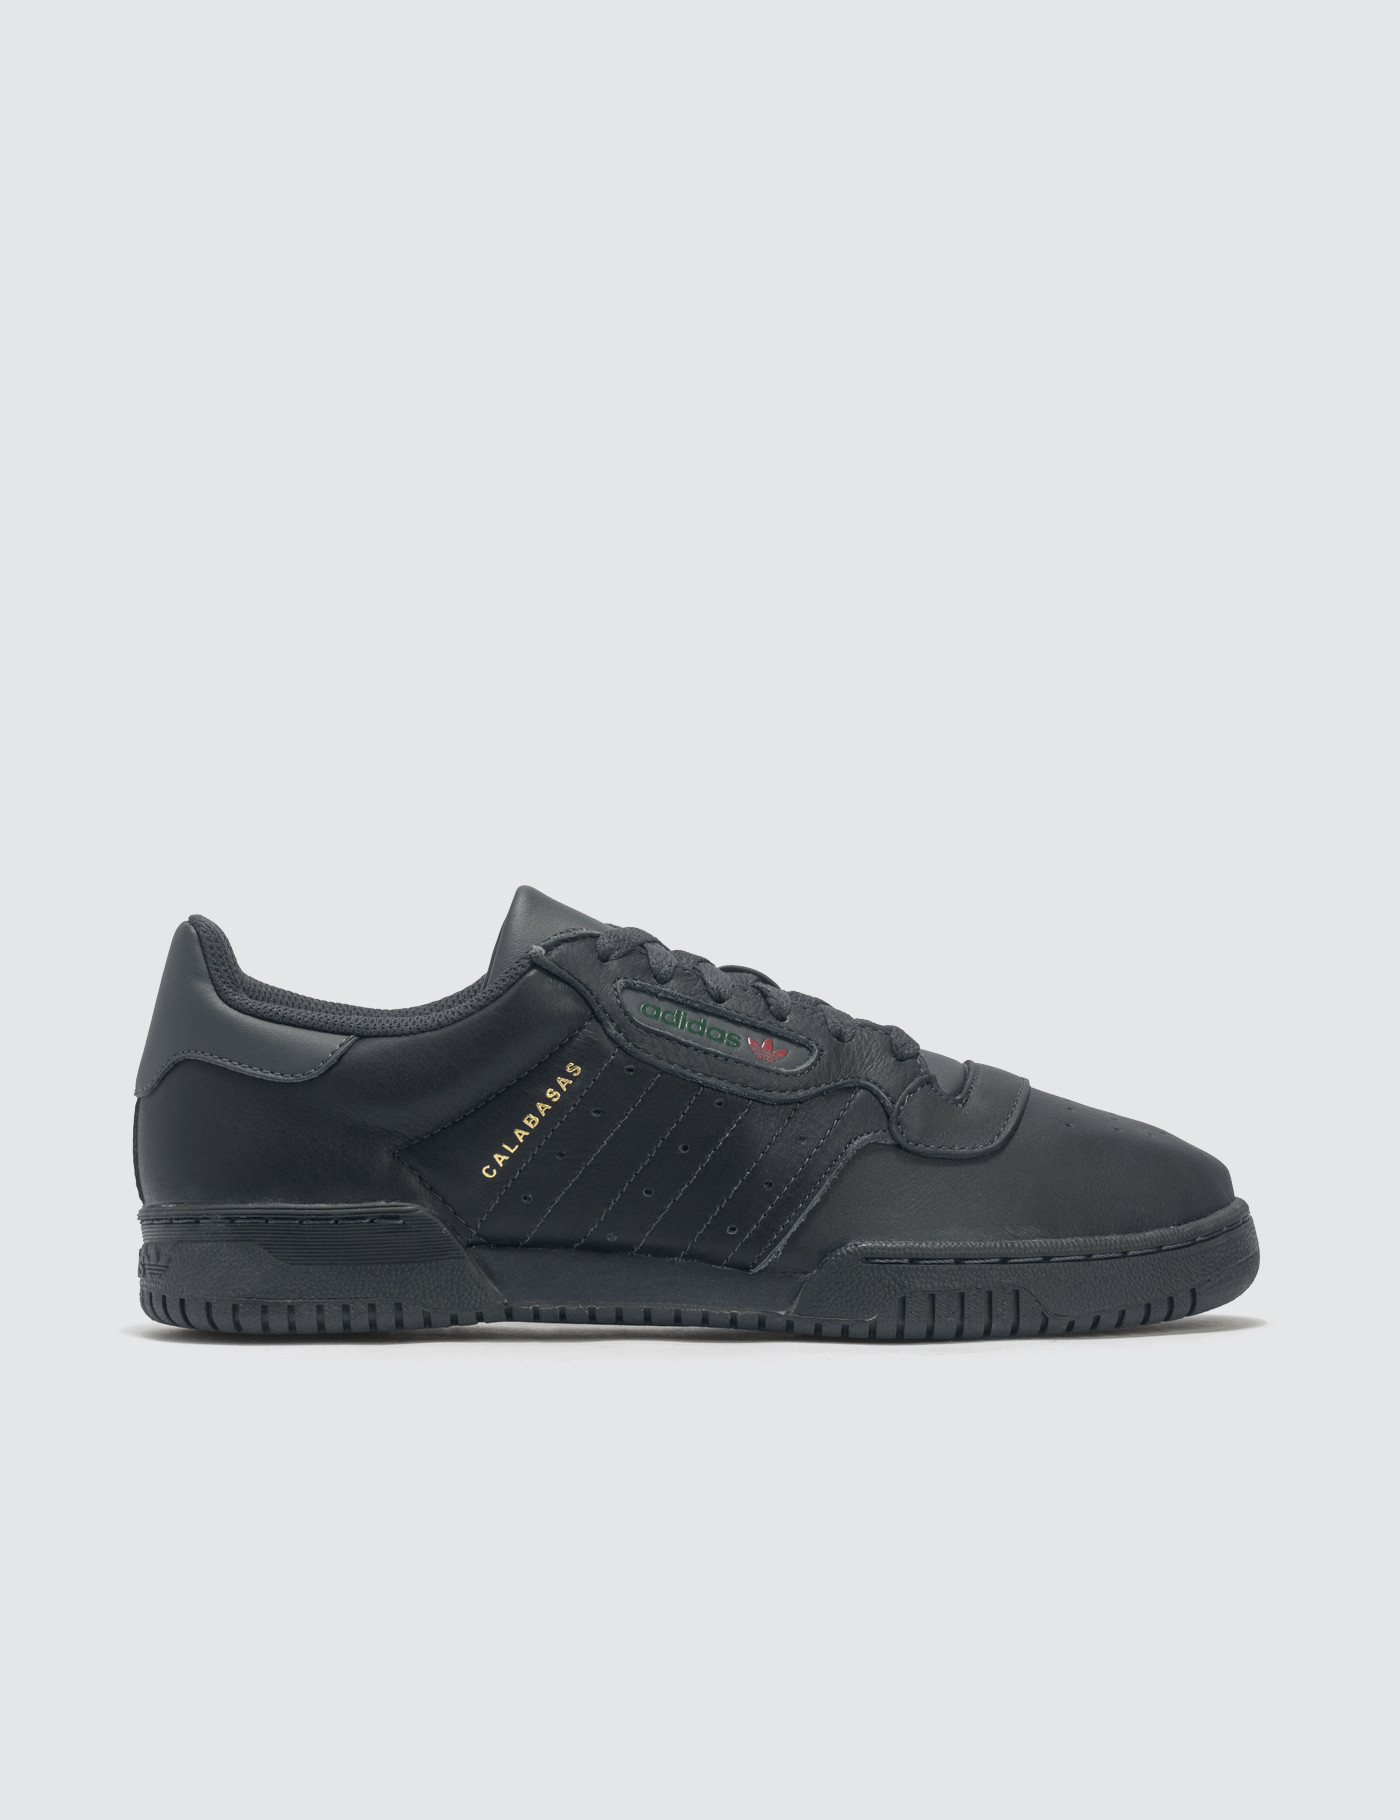 Yeezy Powerphase Originals Buy At Adidas Original IndonesiaBobobobo oQCrdeBxW